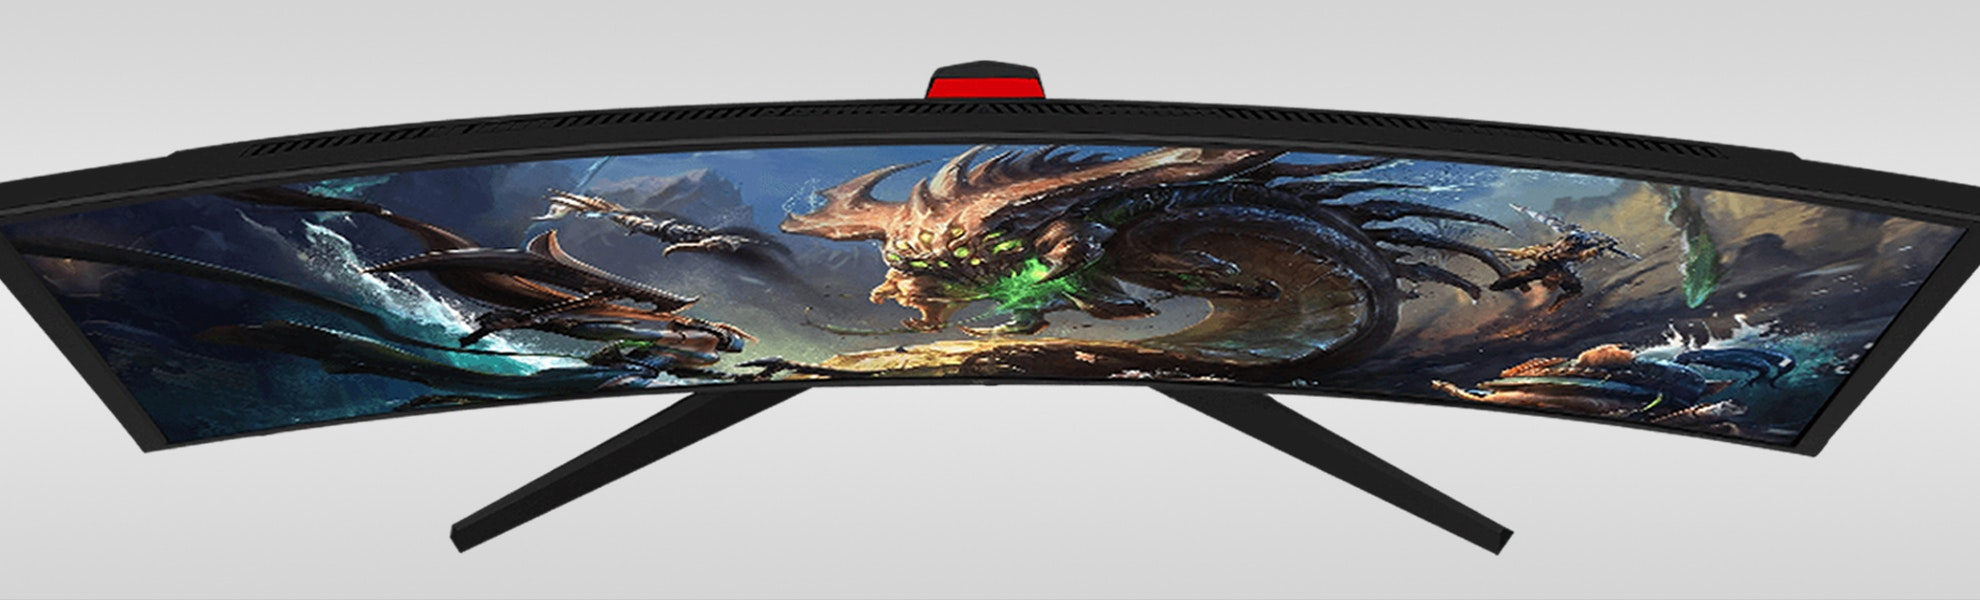 "MSI 27"" 144Hz Curved Gaming Monitor"